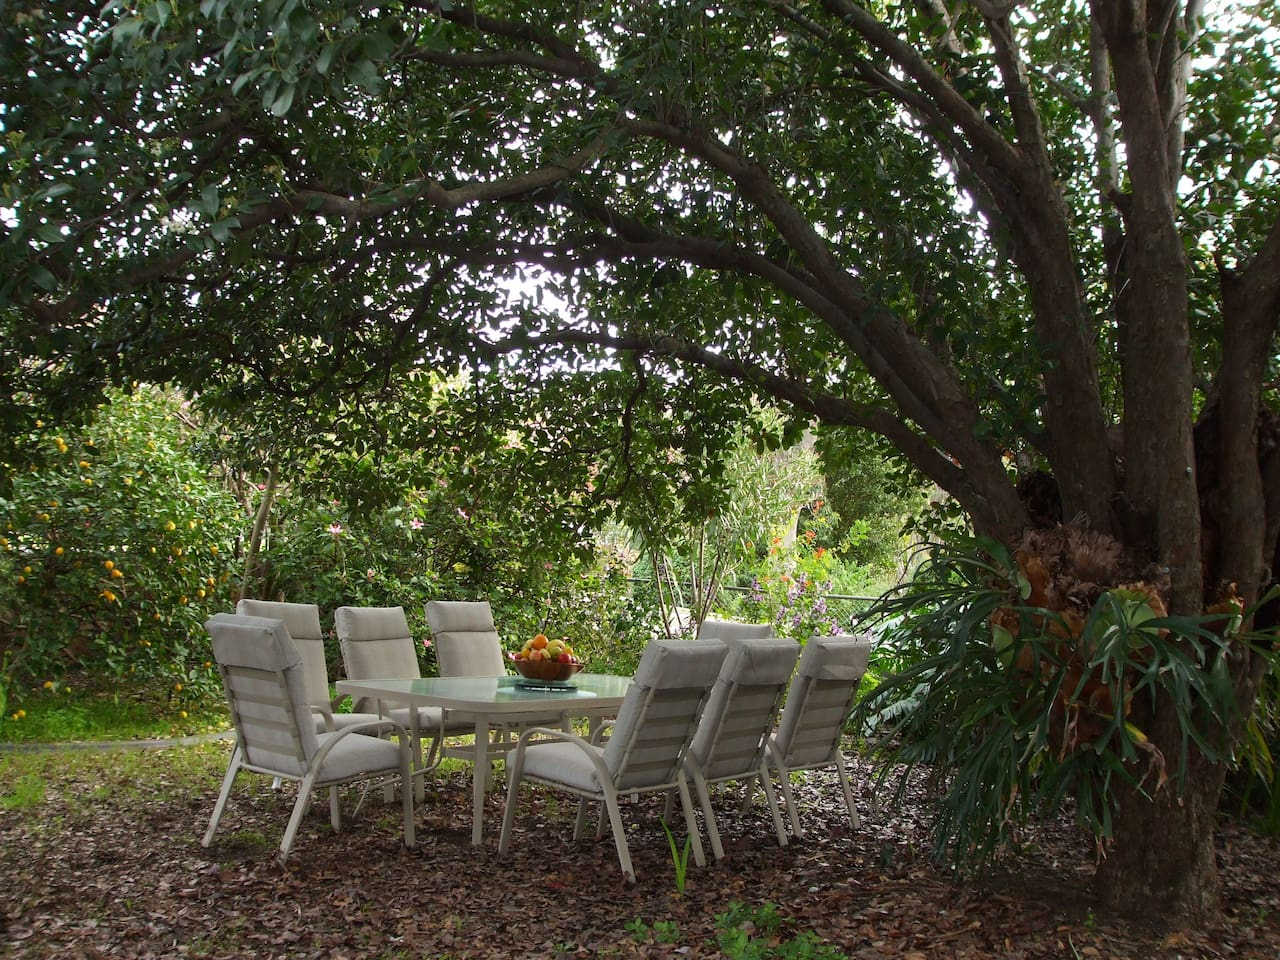 Entertainment areas or a place to just relax in the garden and listen to the birds.